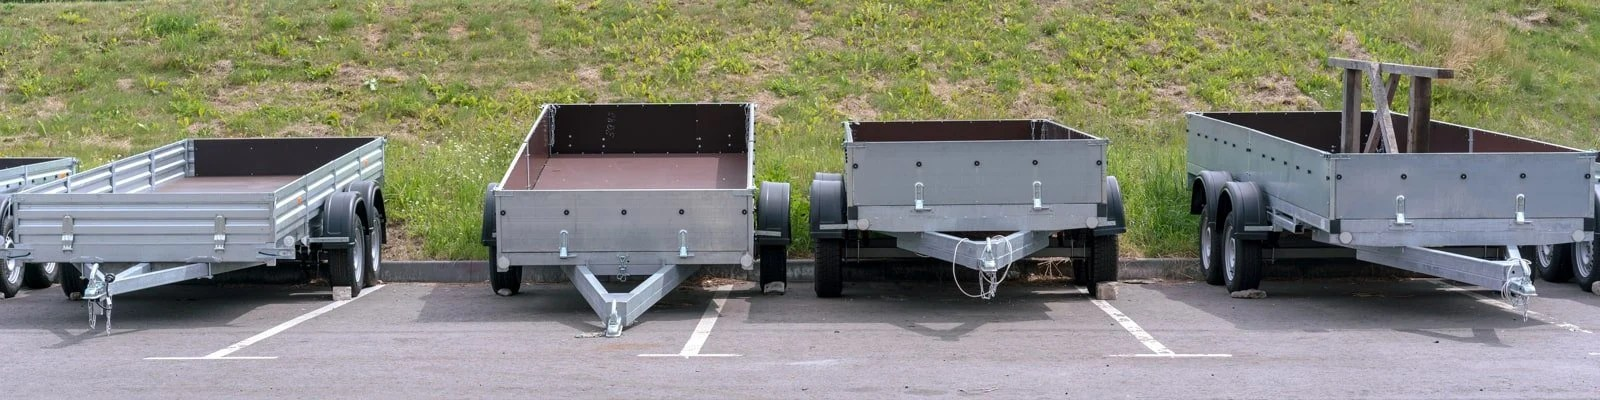 a row of utility trailers